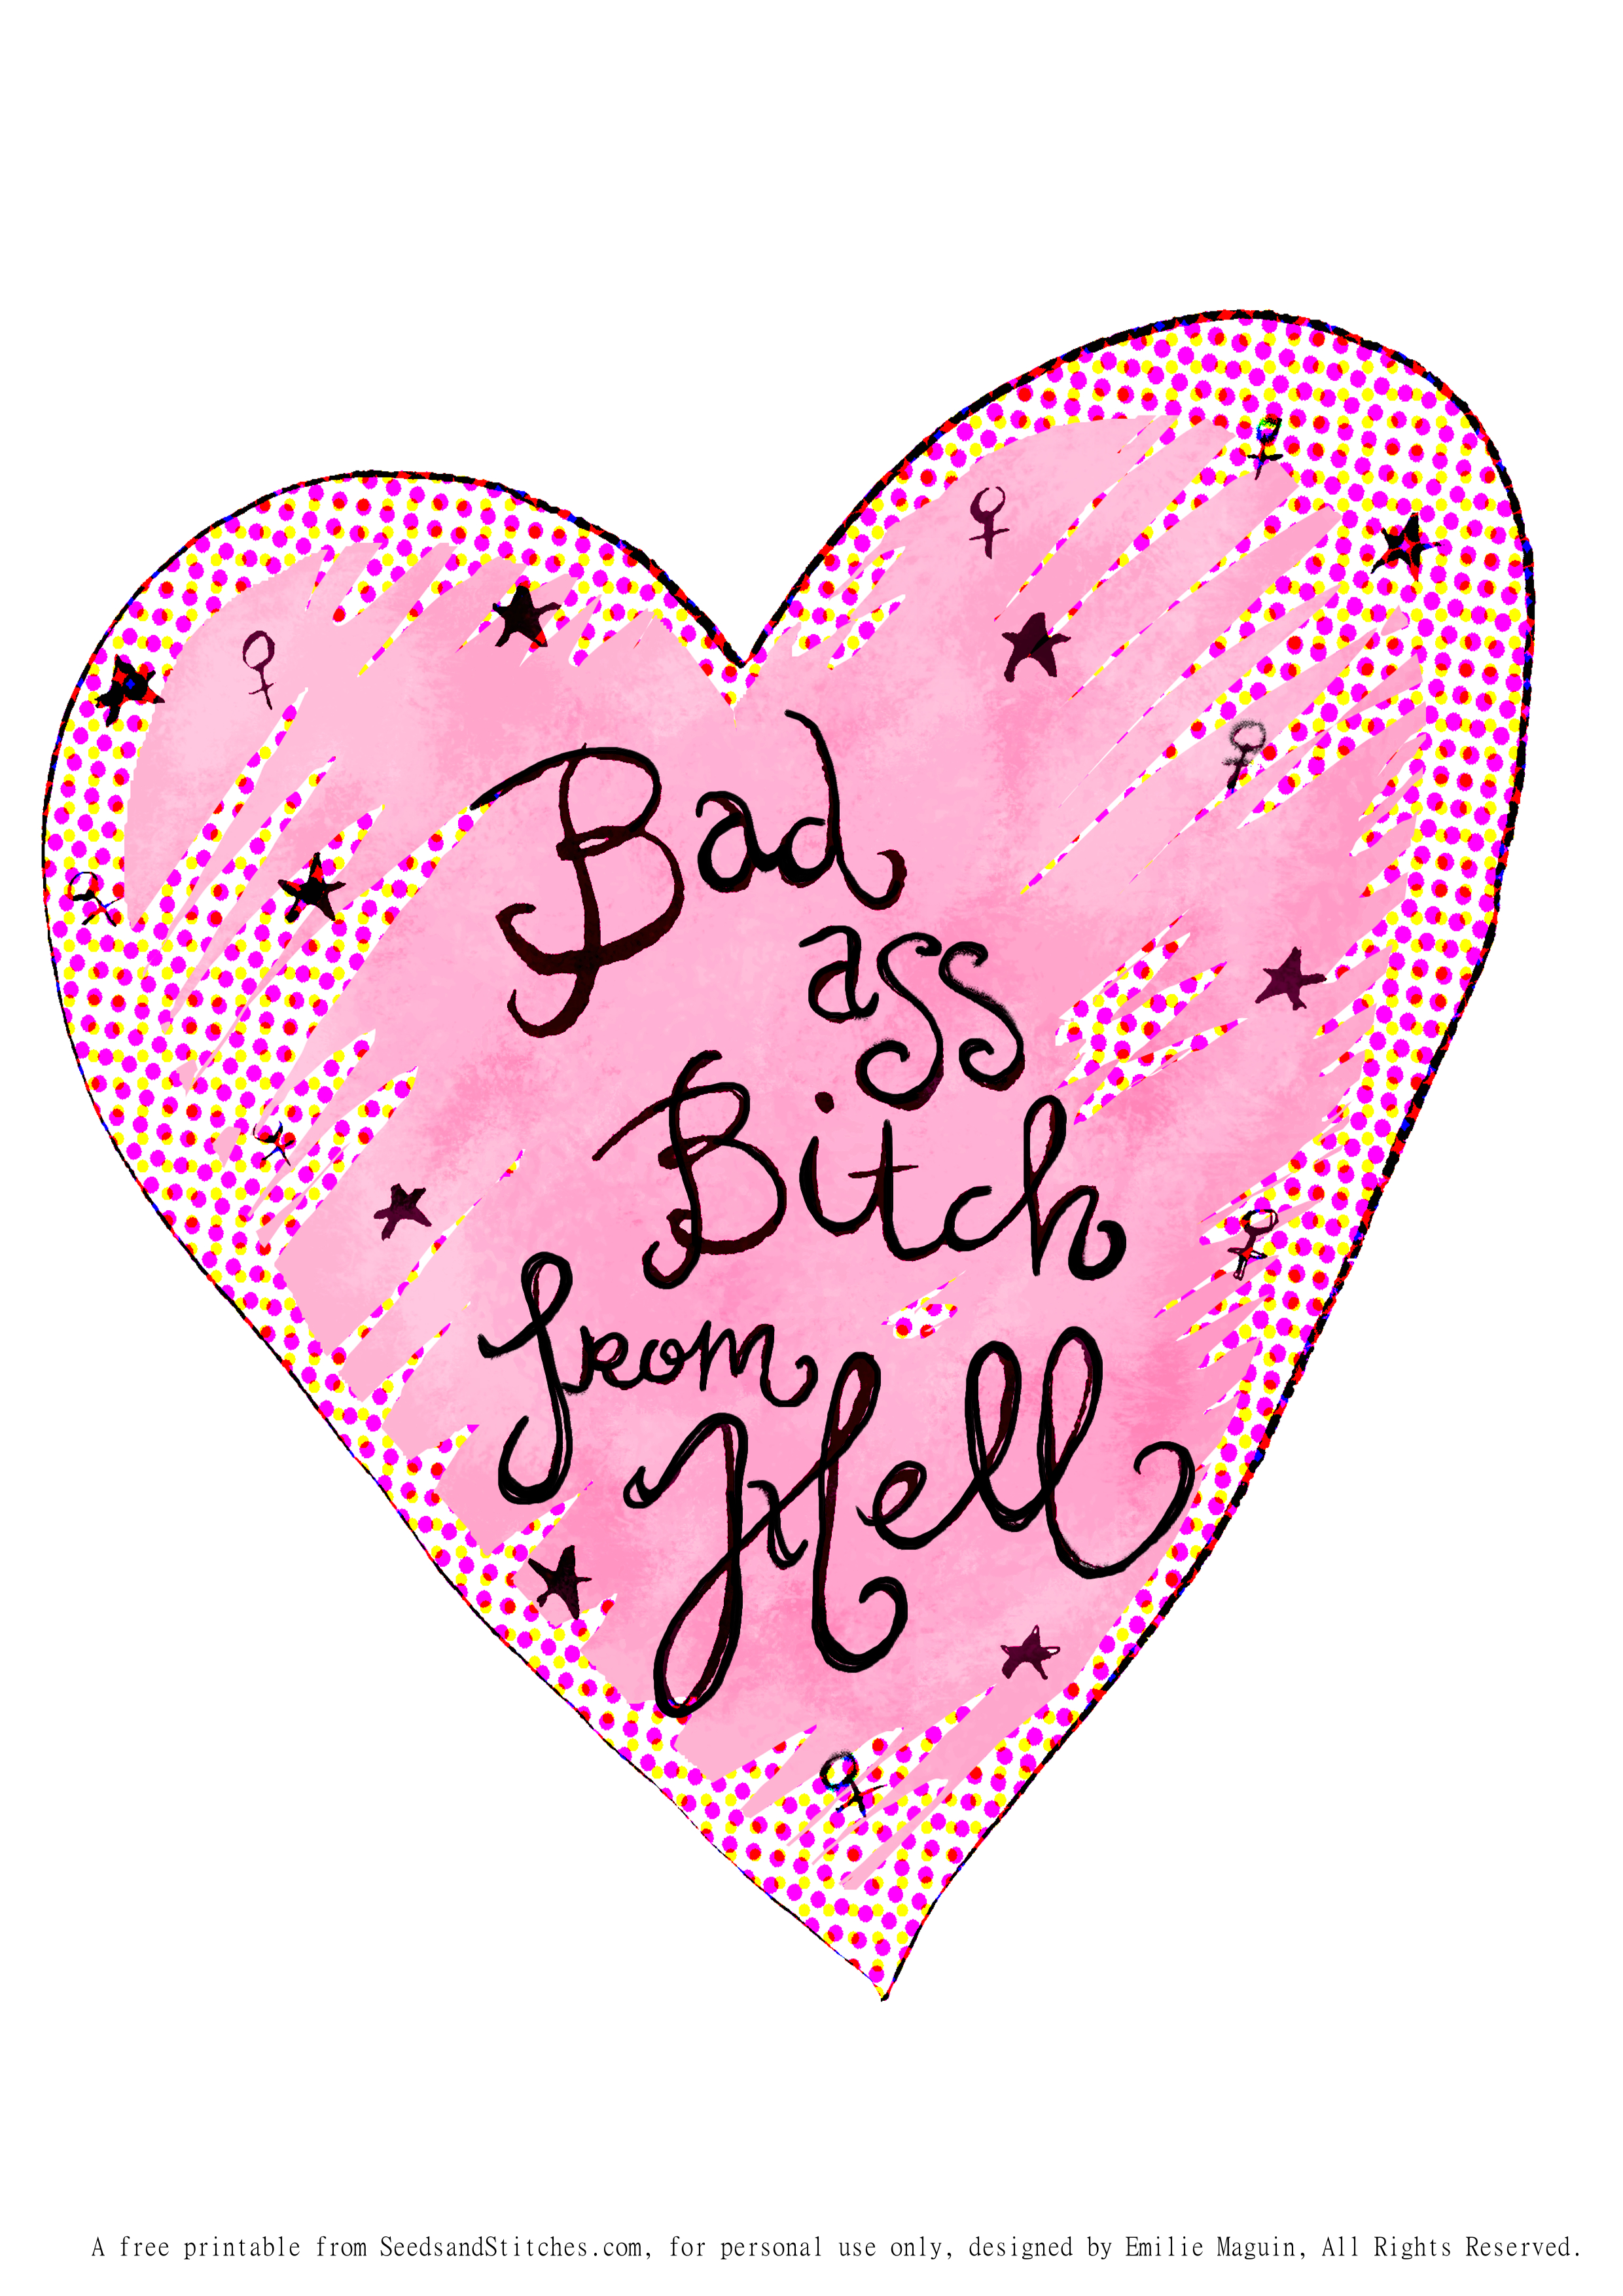 Bad Ass Bitch Galantines Day free printable card by Emilie Maguin for Seeds and Stitches blog